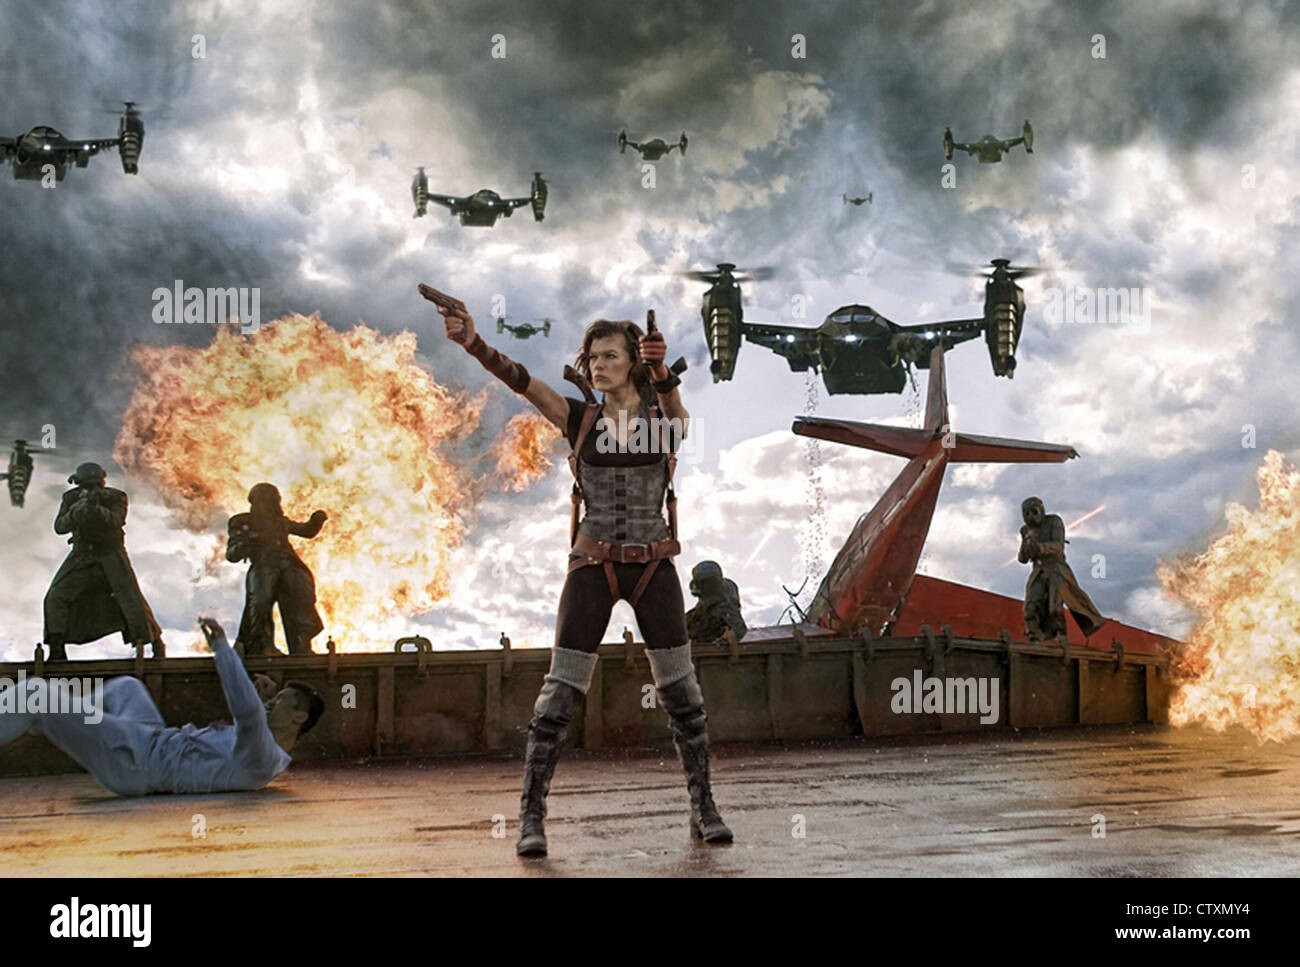 Resident Evil Afterlife 2010 Constantin Film Produktion Film With Stock Photo Alamy